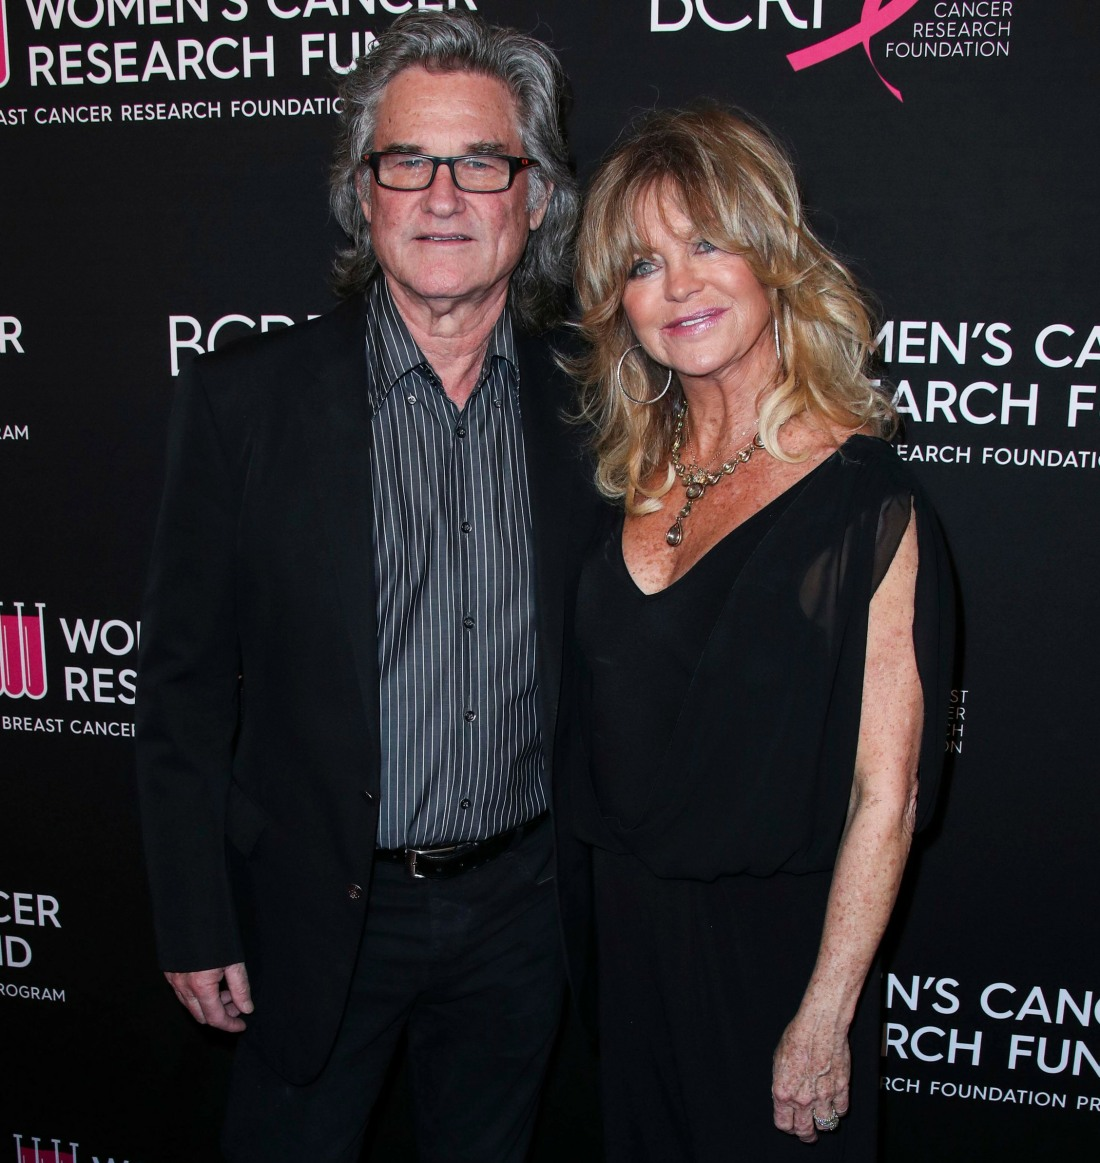 Actor Kurt Russell and partner/actress Goldie Hawn arrive at The Women's Cancer Research Fund's An Unforgettable Evening Benefit Gala 2019 held at the Beverly Wilshire Four Seasons Hotel on February 28, 2019 in Beverly Hills, Los Angeles, California, Unit